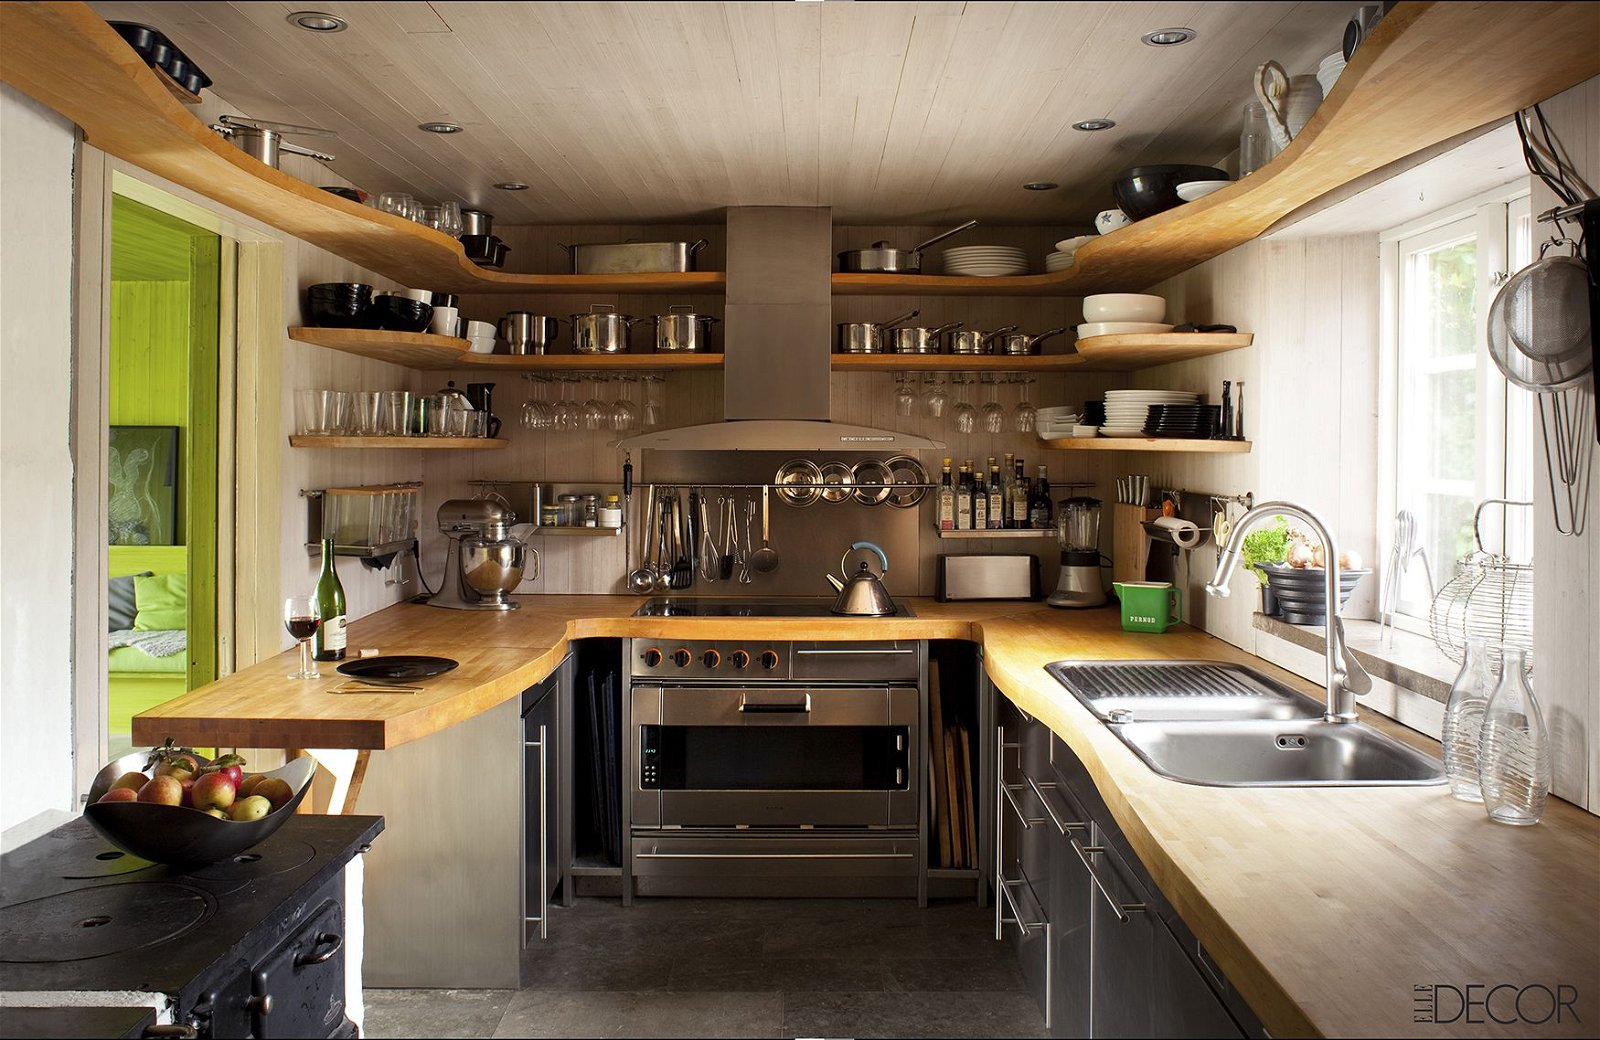 217 Mount Wavy Shelves to update your kitchen cabinets via simphome